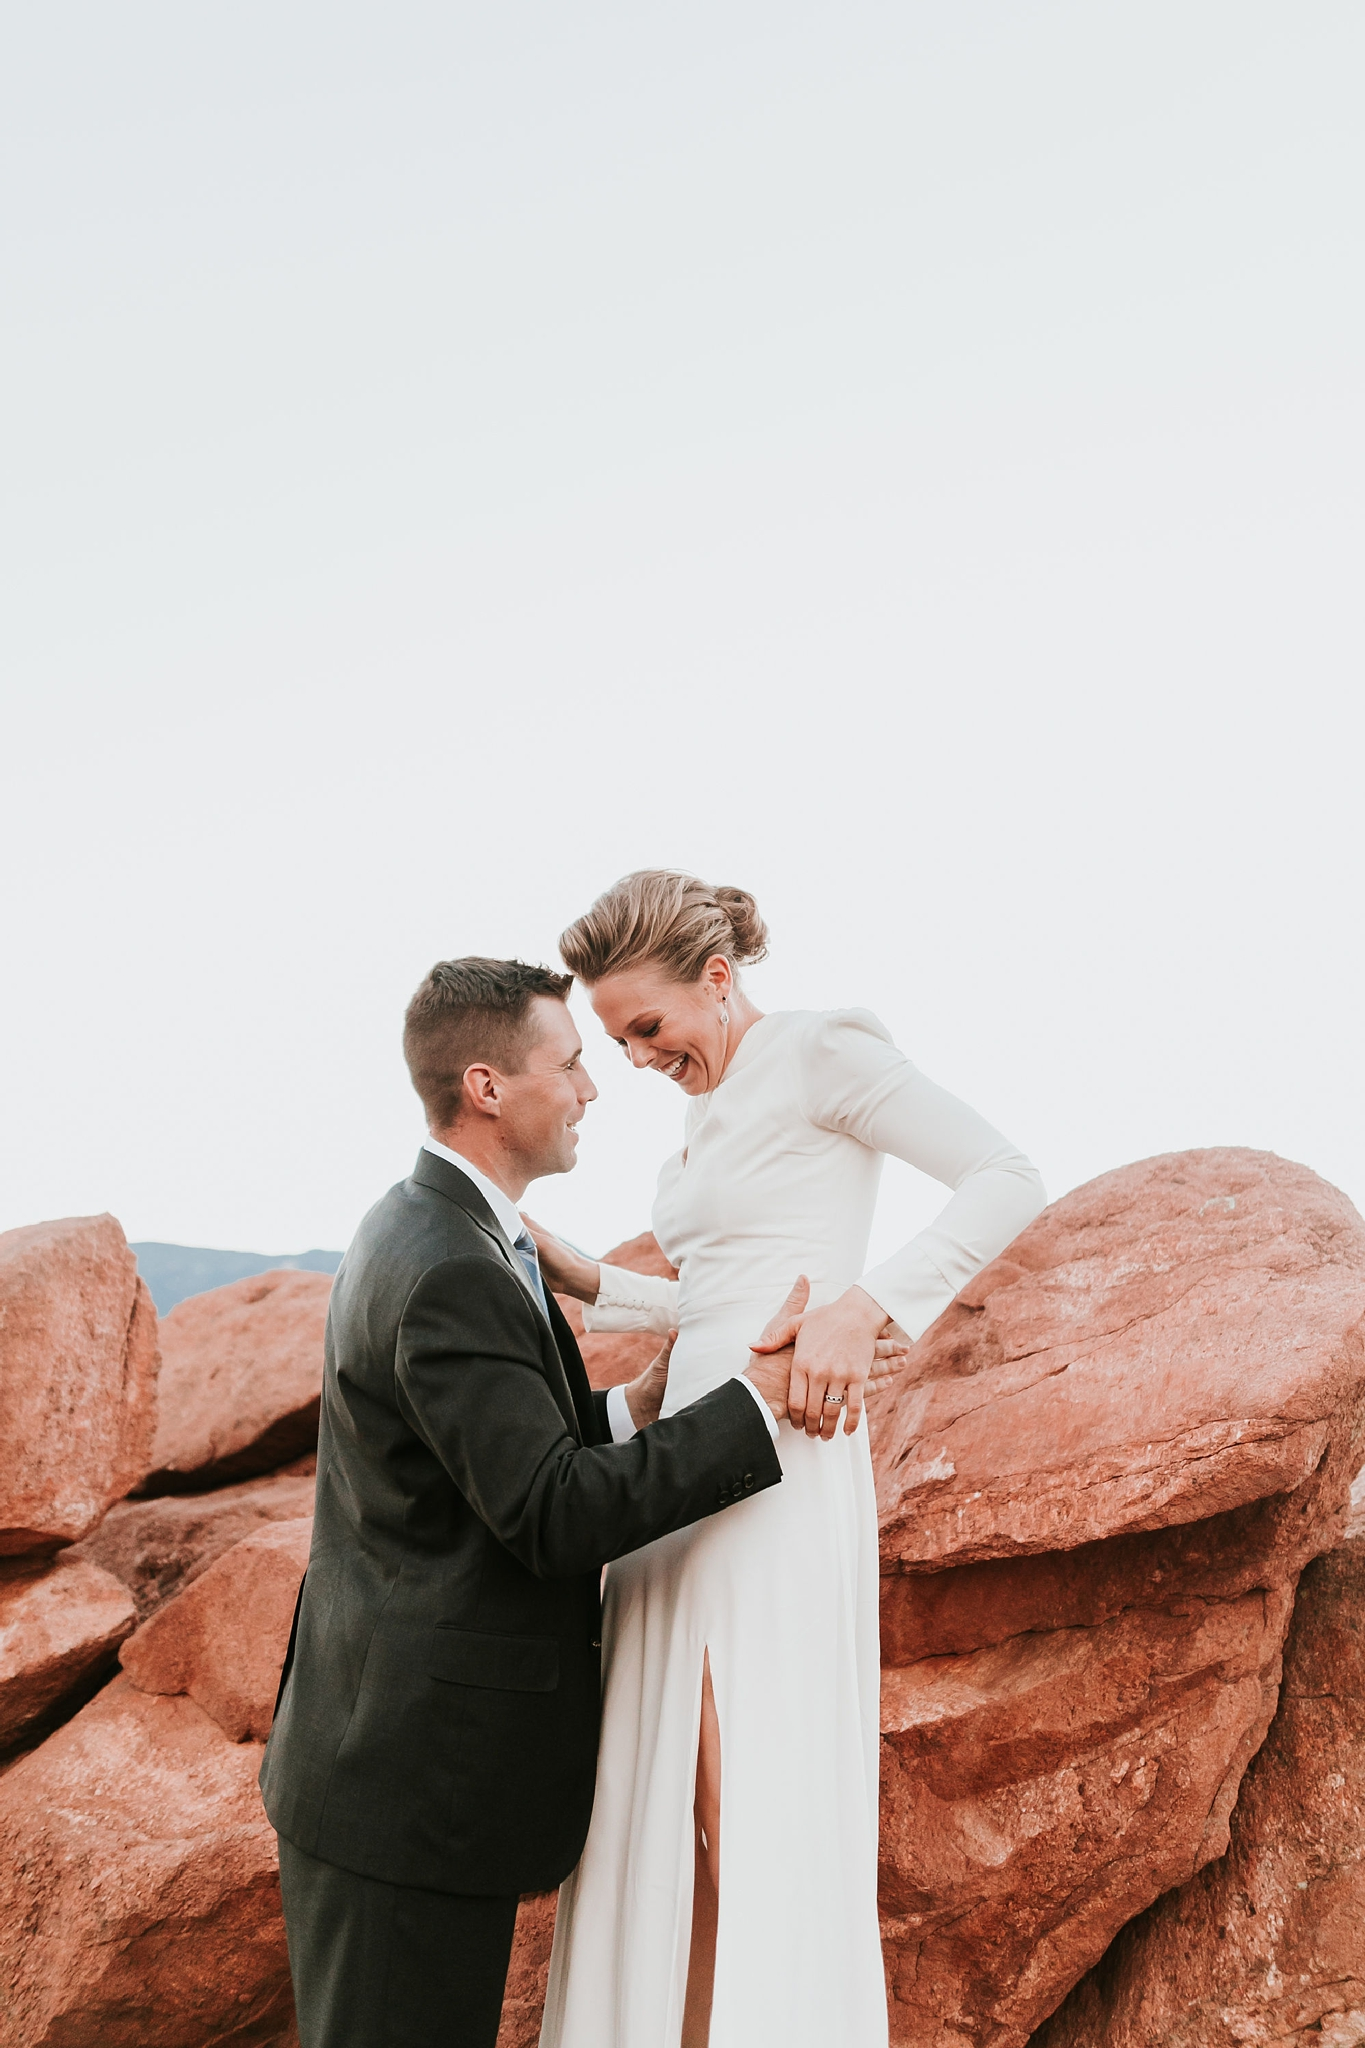 Alicia+lucia+photography+-+albuquerque+wedding+photographer+-+santa+fe+wedding+photography+-+new+mexico+wedding+photographer+-+new+mexico+wedding+-+wedding+venues+-+new+mexico+wedding+venues+-+colorado+wedding+venues_0044.jpg